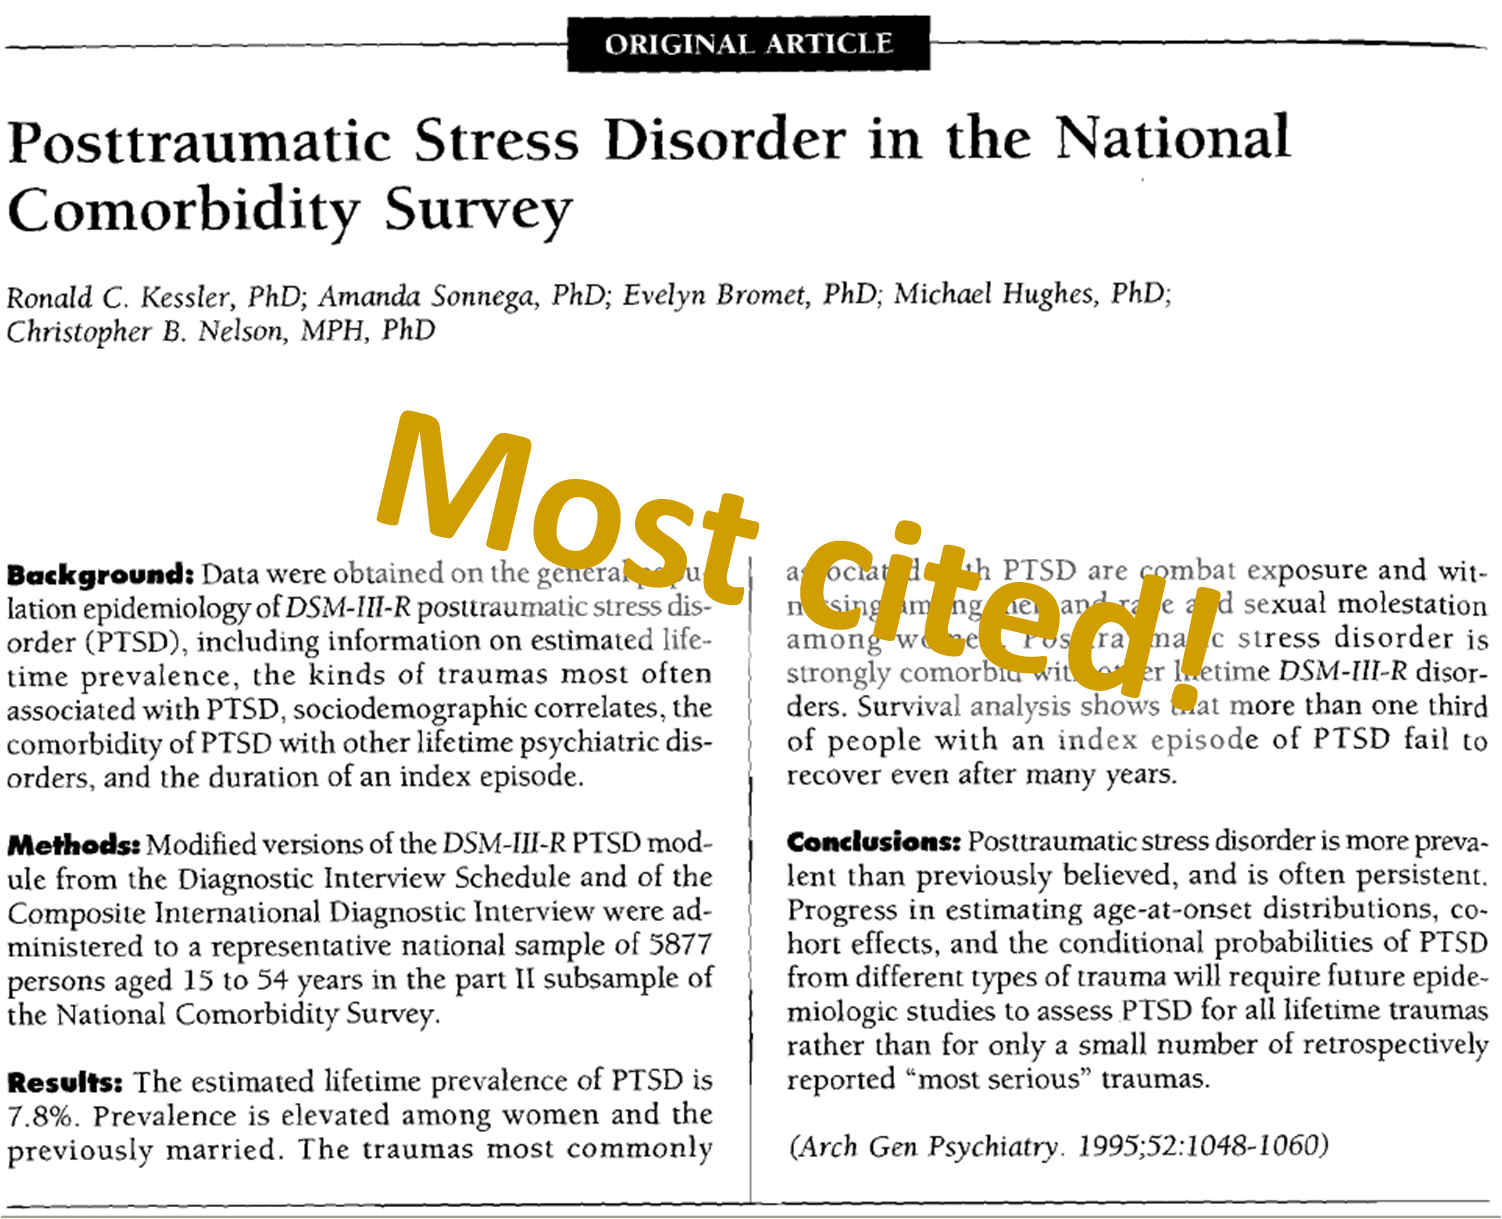 001 Ptsd Research Paper Trauma Recovery Most Cited Amazing Outline Introduction Argumentative Full